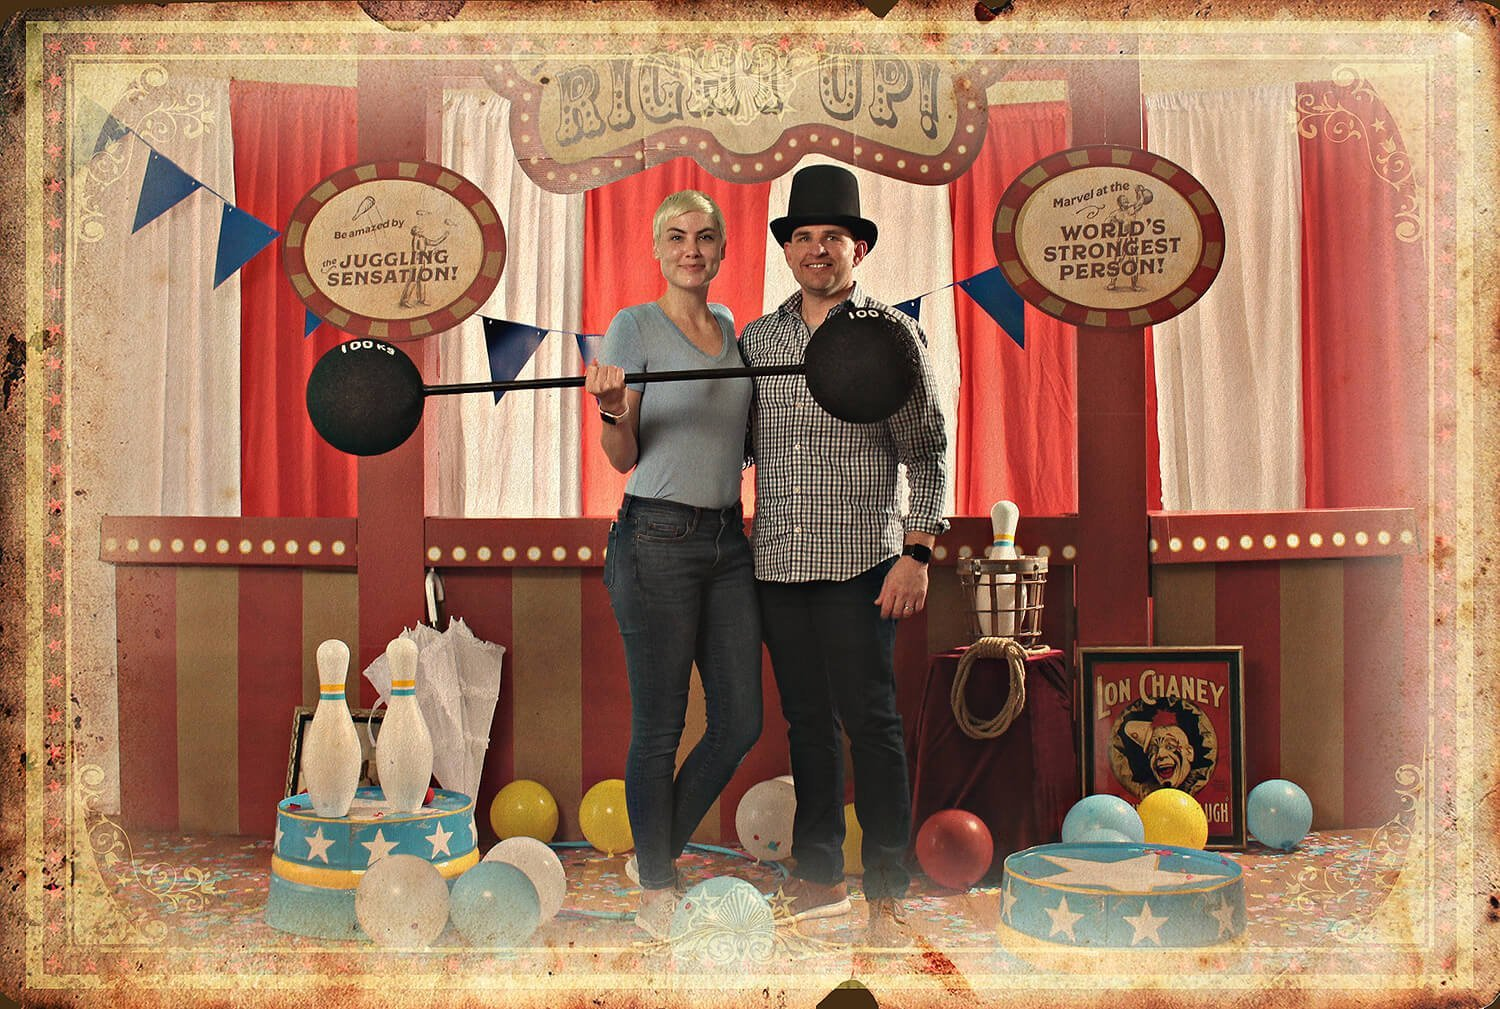 circus photo booth example image